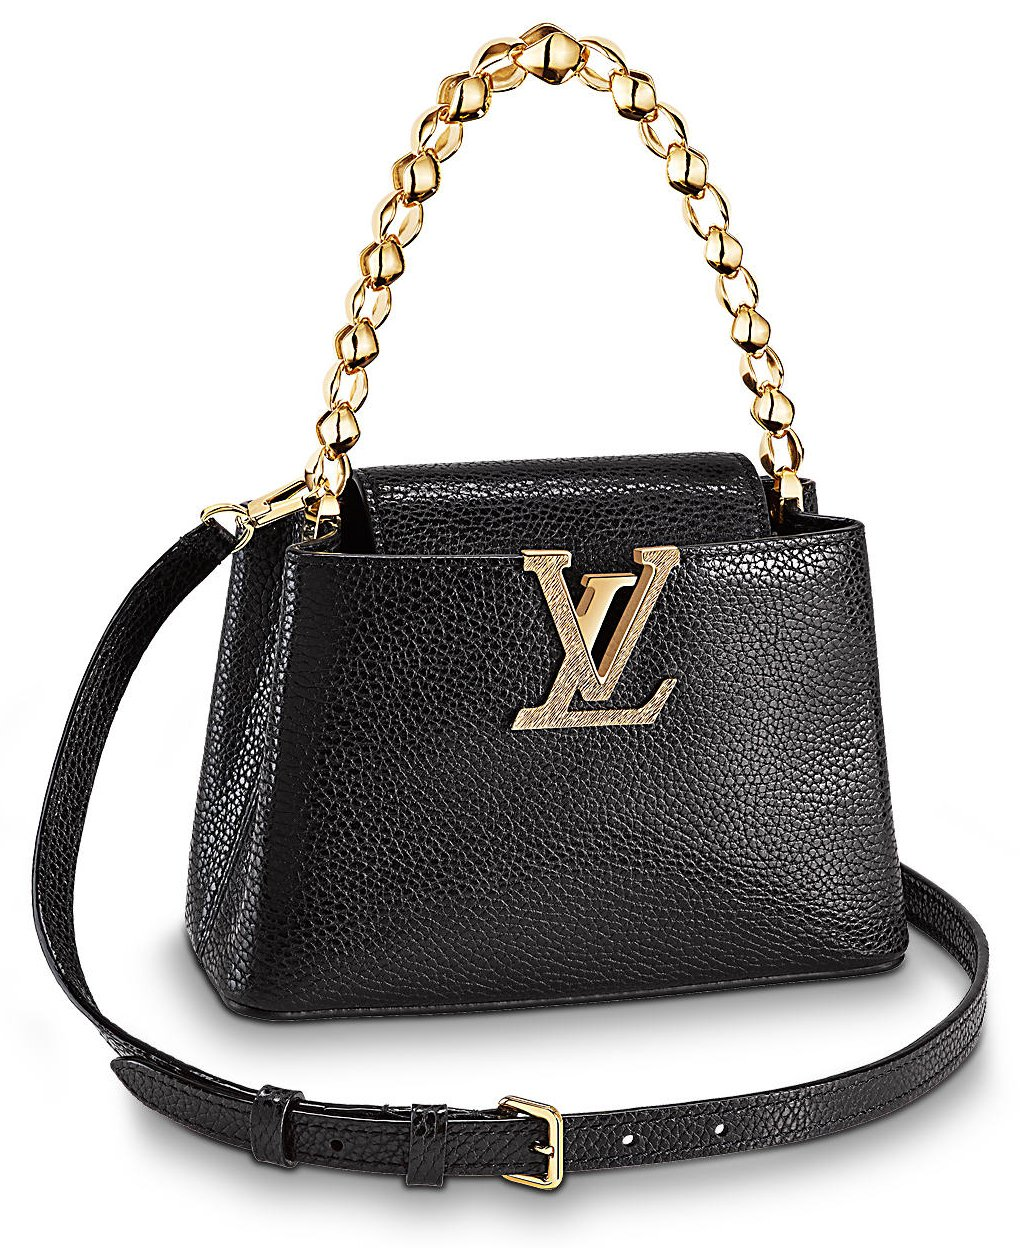 LOUIS-VUITTON-CAPUCINES-SHOULDER-BAG-6